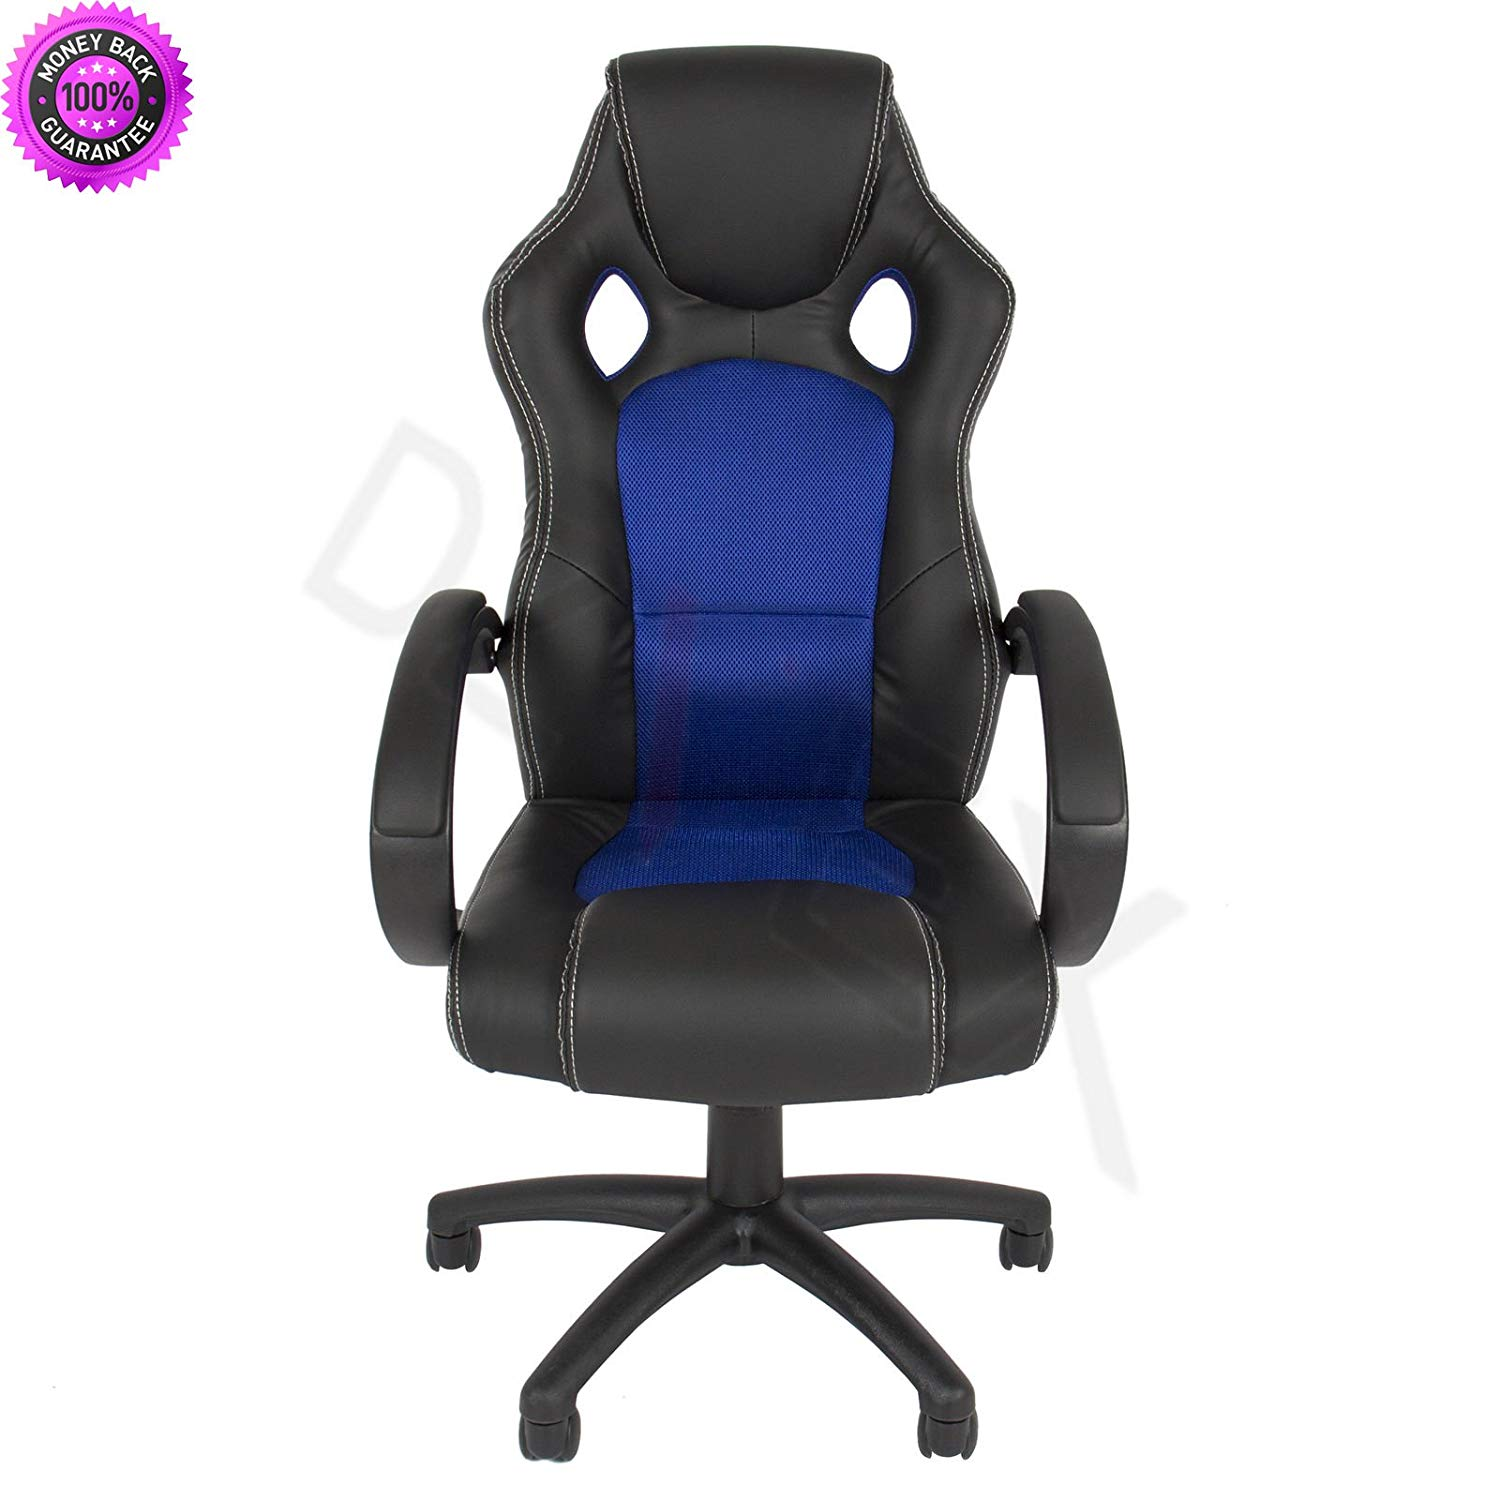 DzVeX_Executive Racing Gaming Office Desk Chair PU Leather Swivel - Back (Blue) And home office desk home office furniture collections modular home office furniture office furniture office